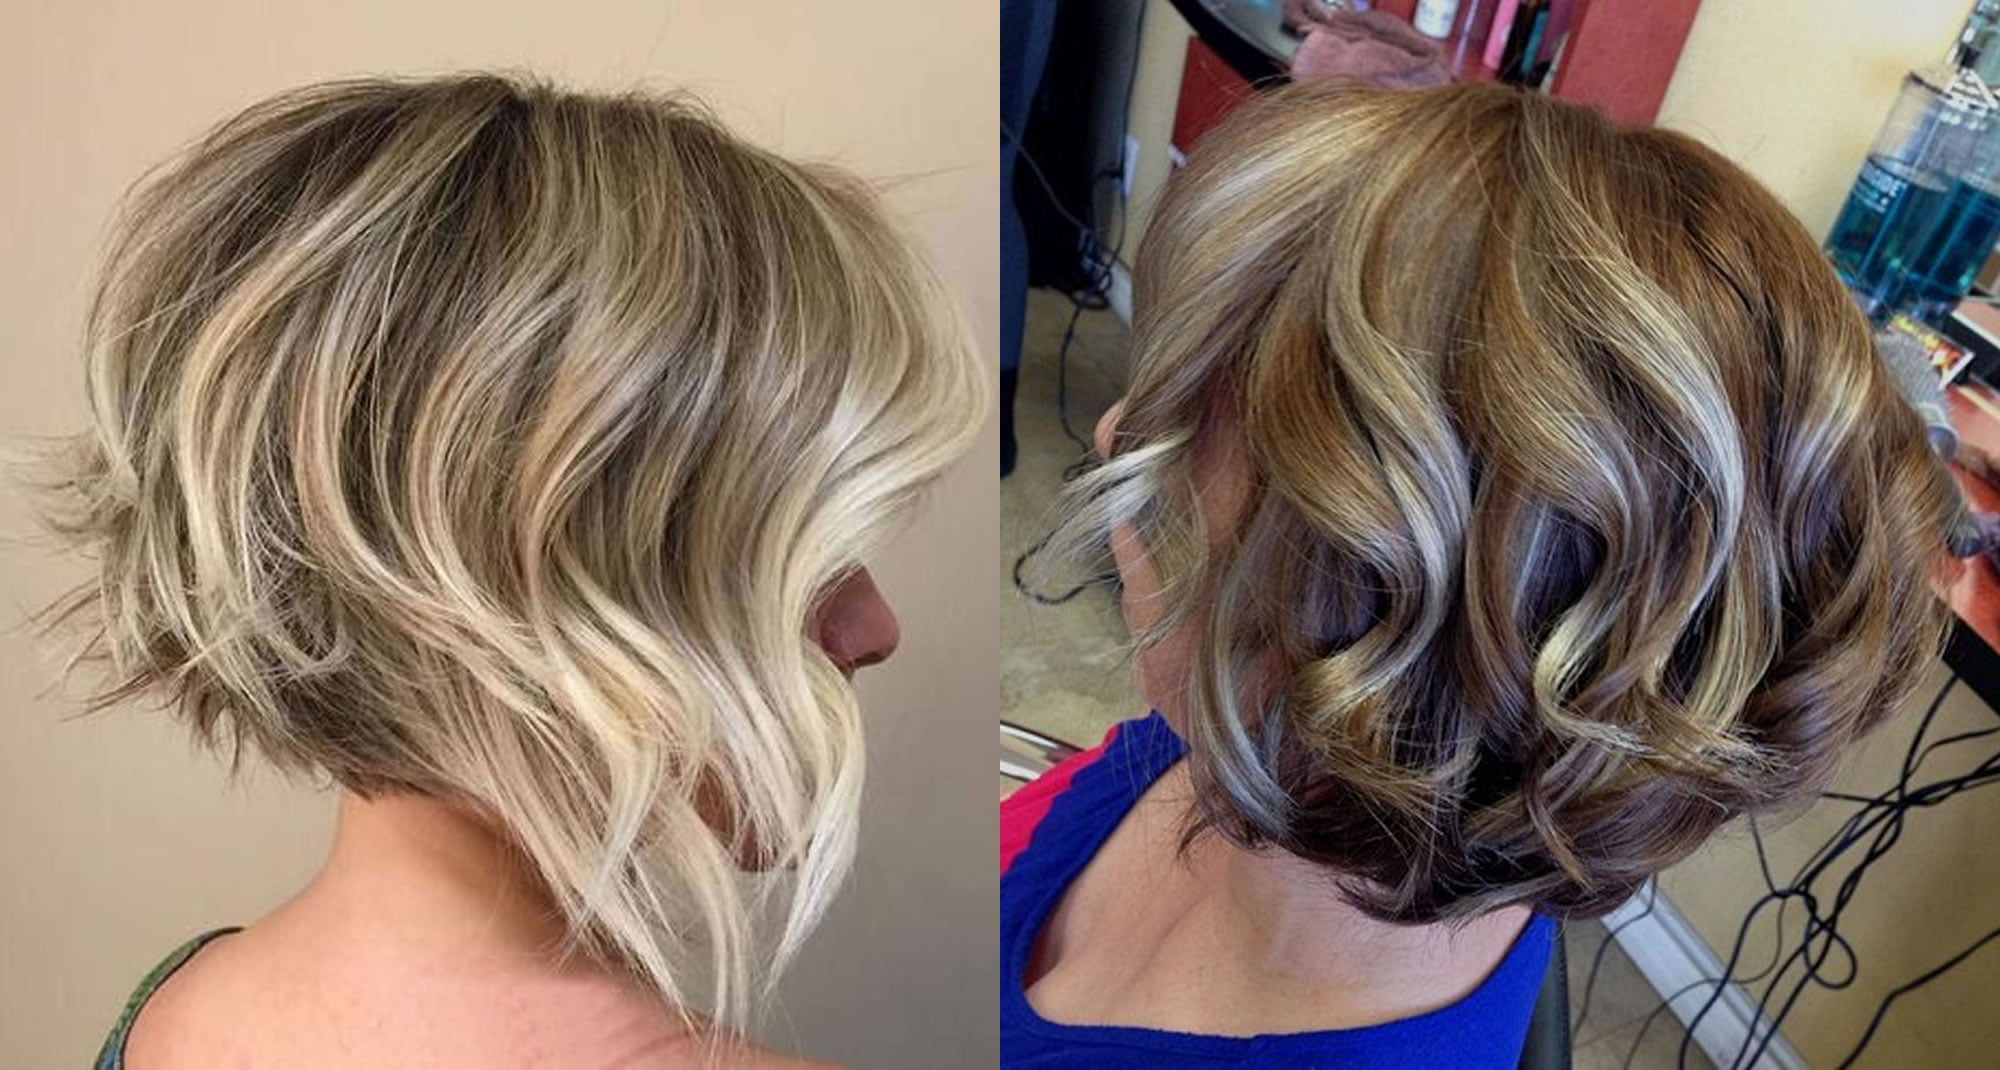 Hair Color Styles: The Best 50 Balayage Bob Hairstyles (Short+Long) & Highlights